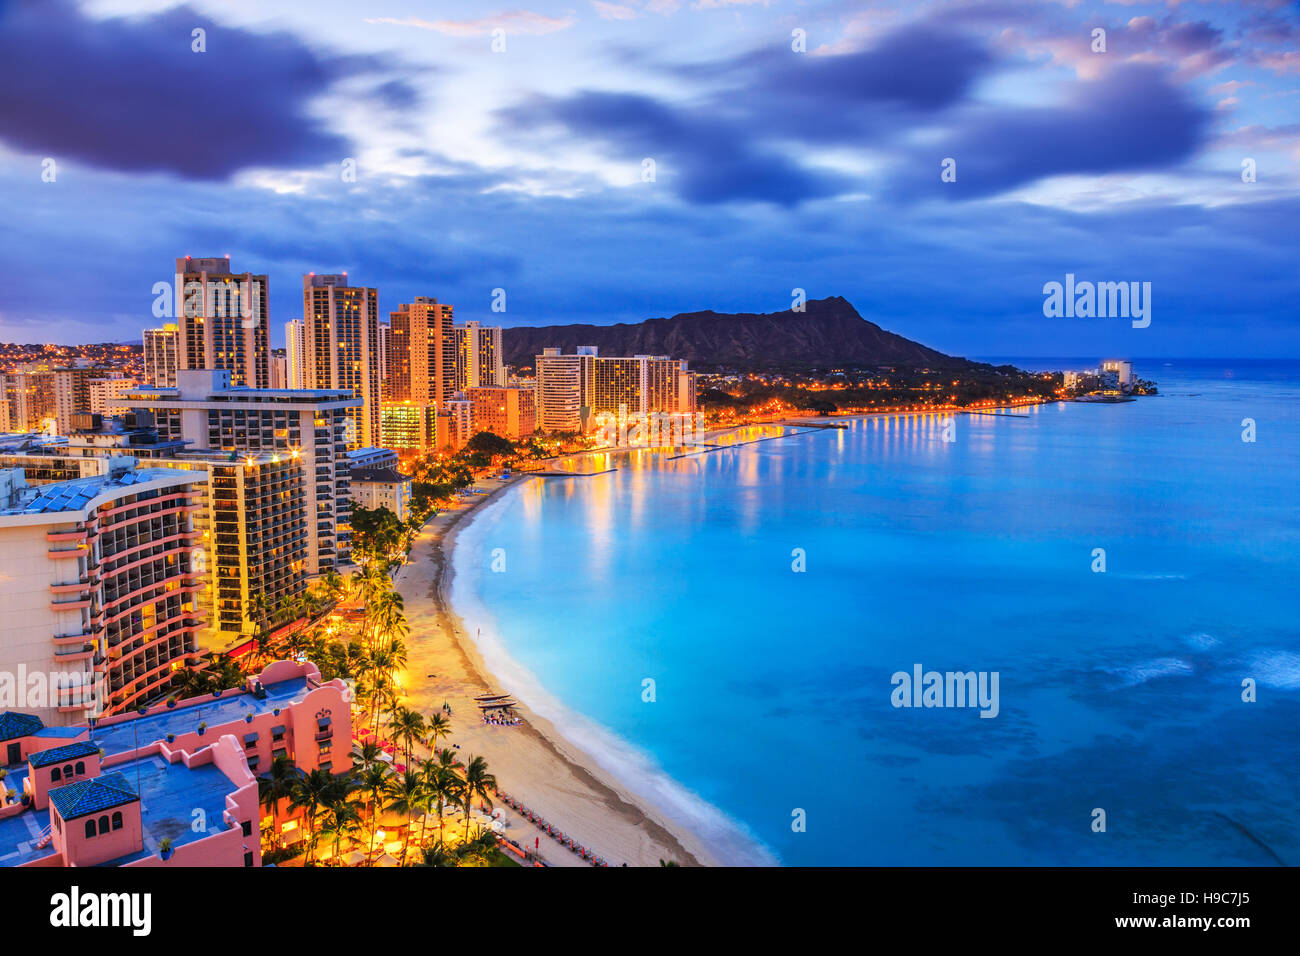 Honolulu, Hawaii. Toits de Honolulu, le volcan Diamond Head y compris les hôtels et les bâtiments sur Photo Stock